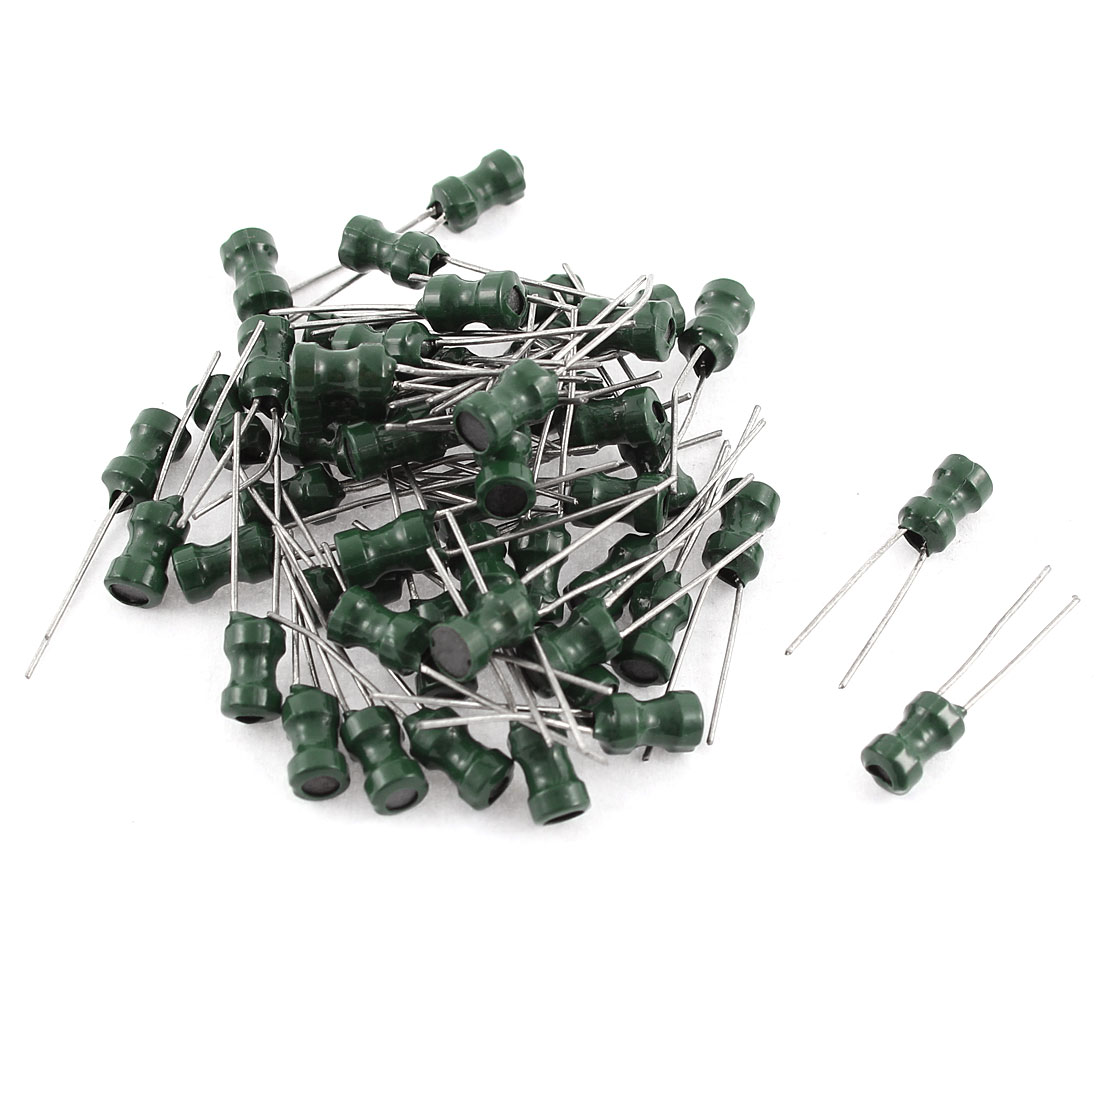 50 Pcs 560UH Inductance 4mmx6mm 2poles DIP Radial Leaded Power Inductors